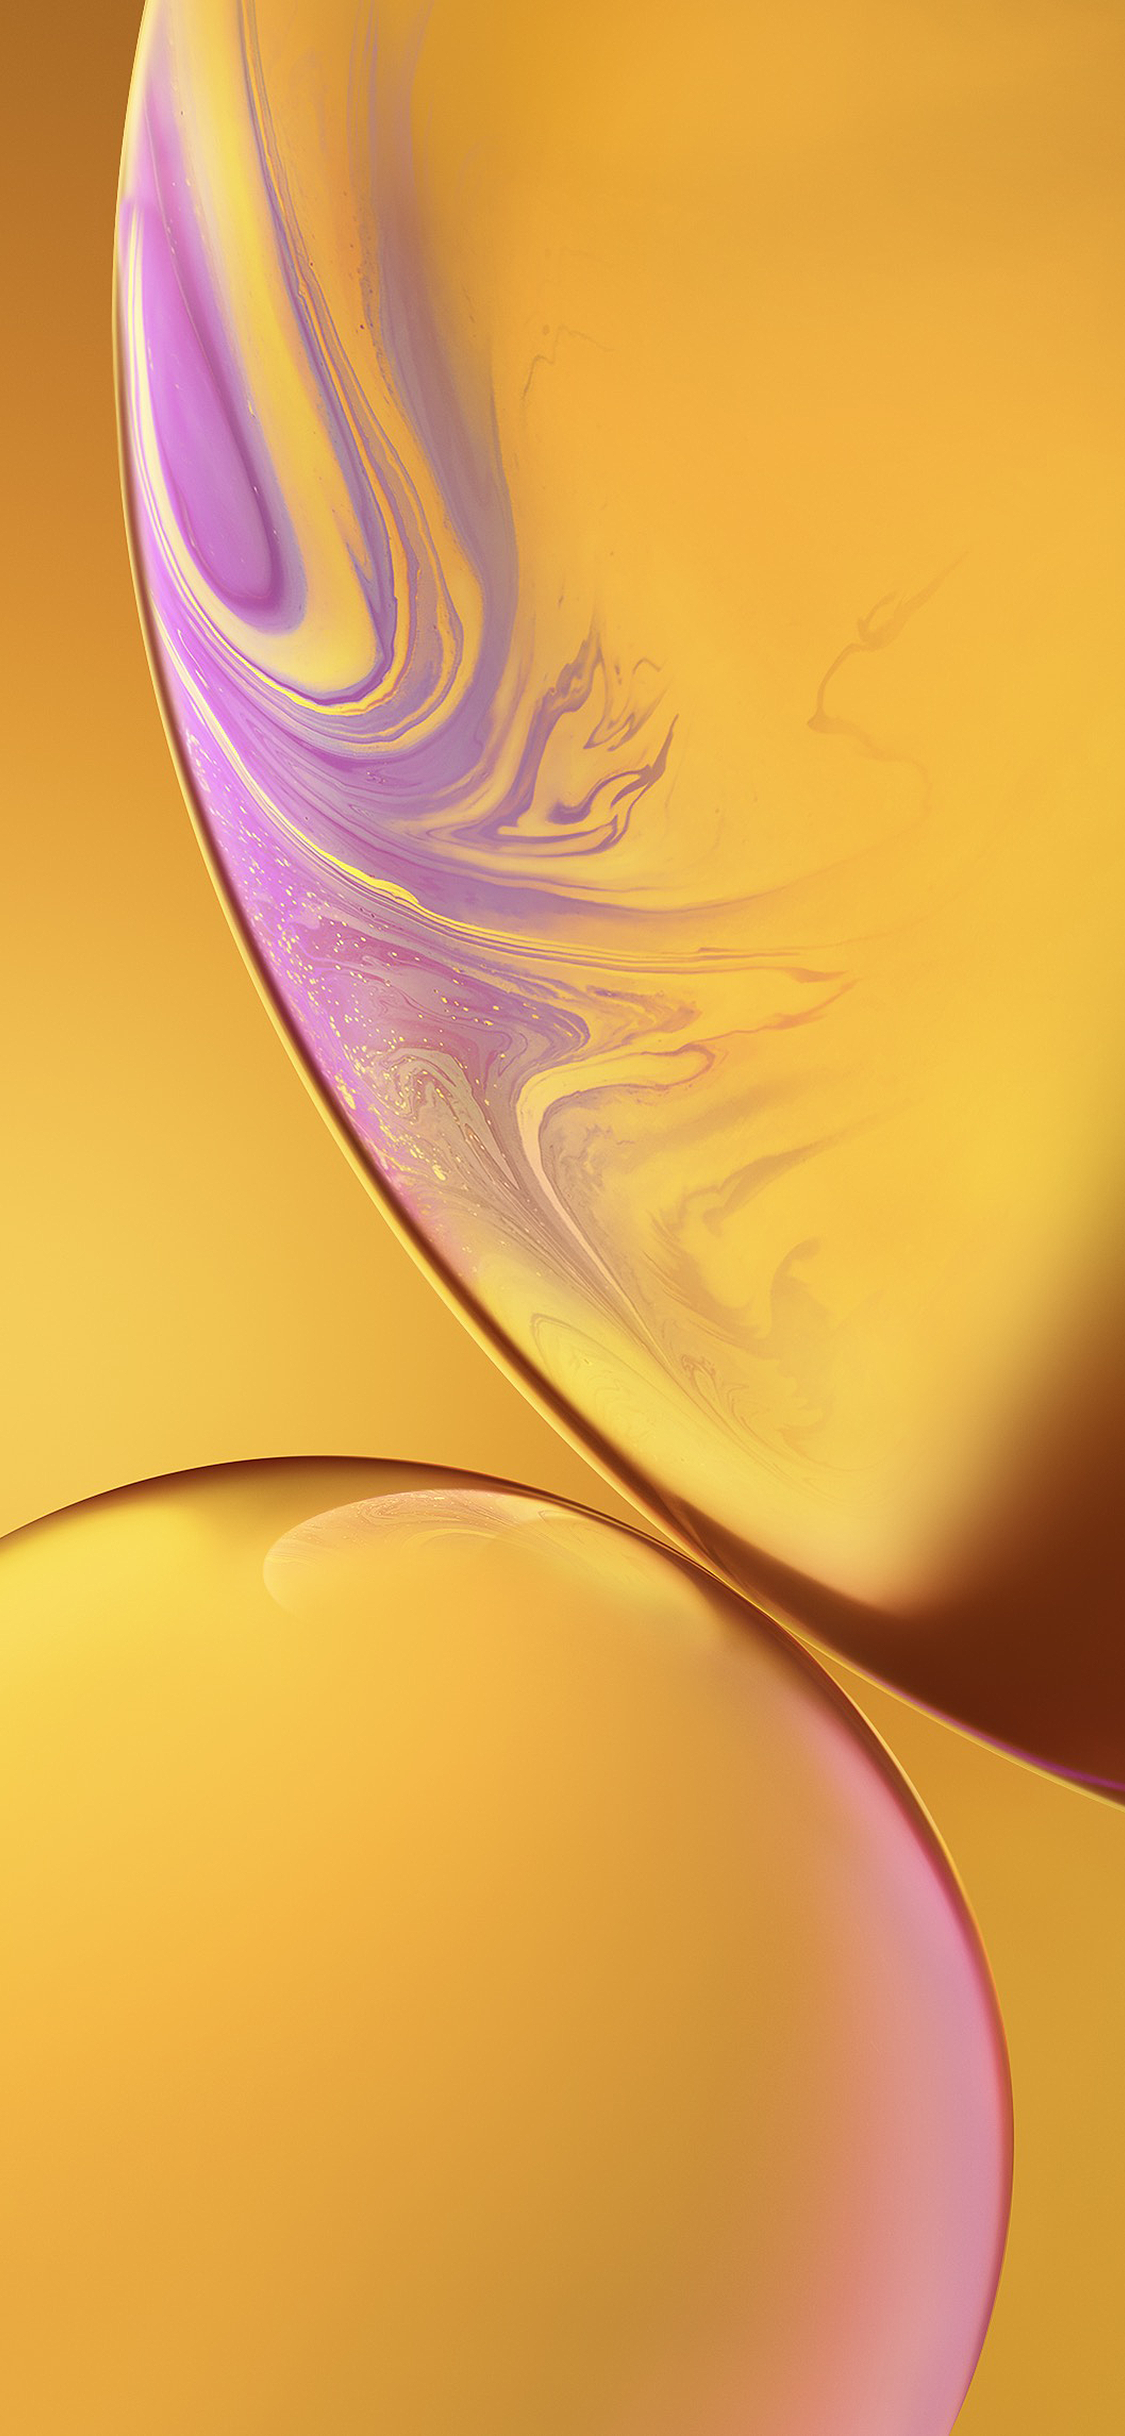 iPhone wallpaper ios 12 wallpapers yellow Fonds d'écran iPhone du 14/09/2018